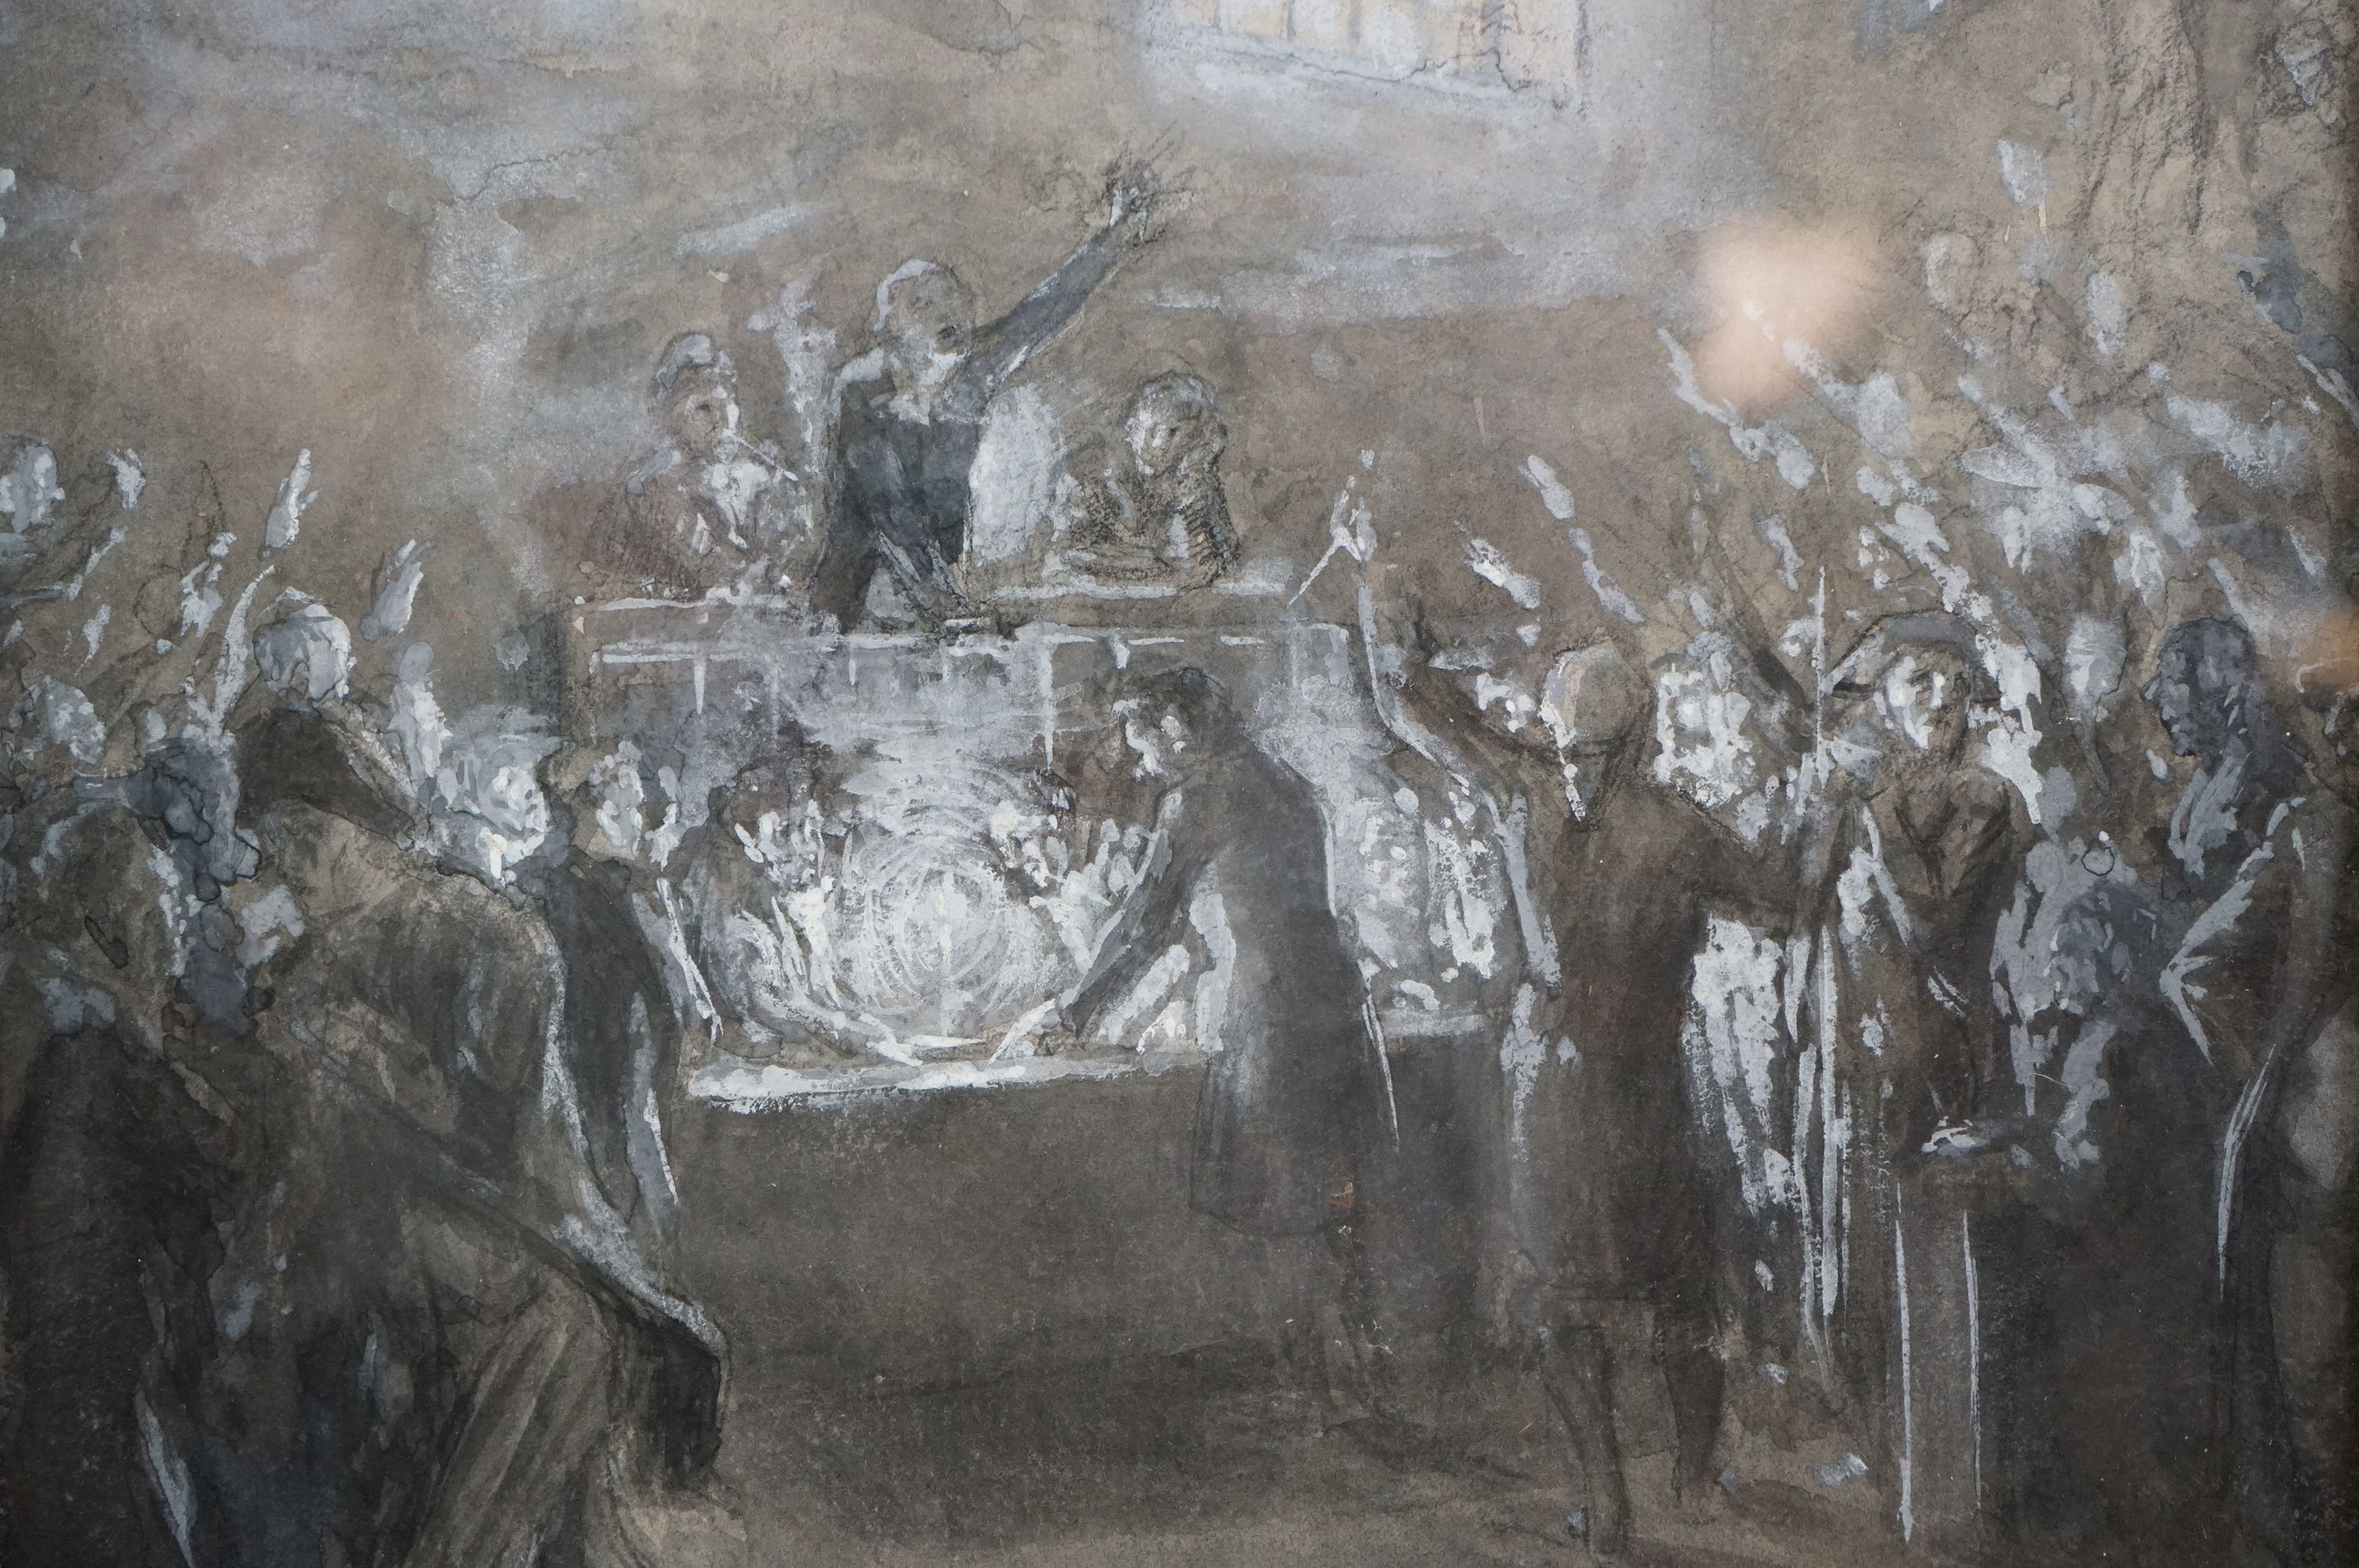 Watercolour of 19th century parliamentary figures casting a vote, possibly French - Image 3 of 5